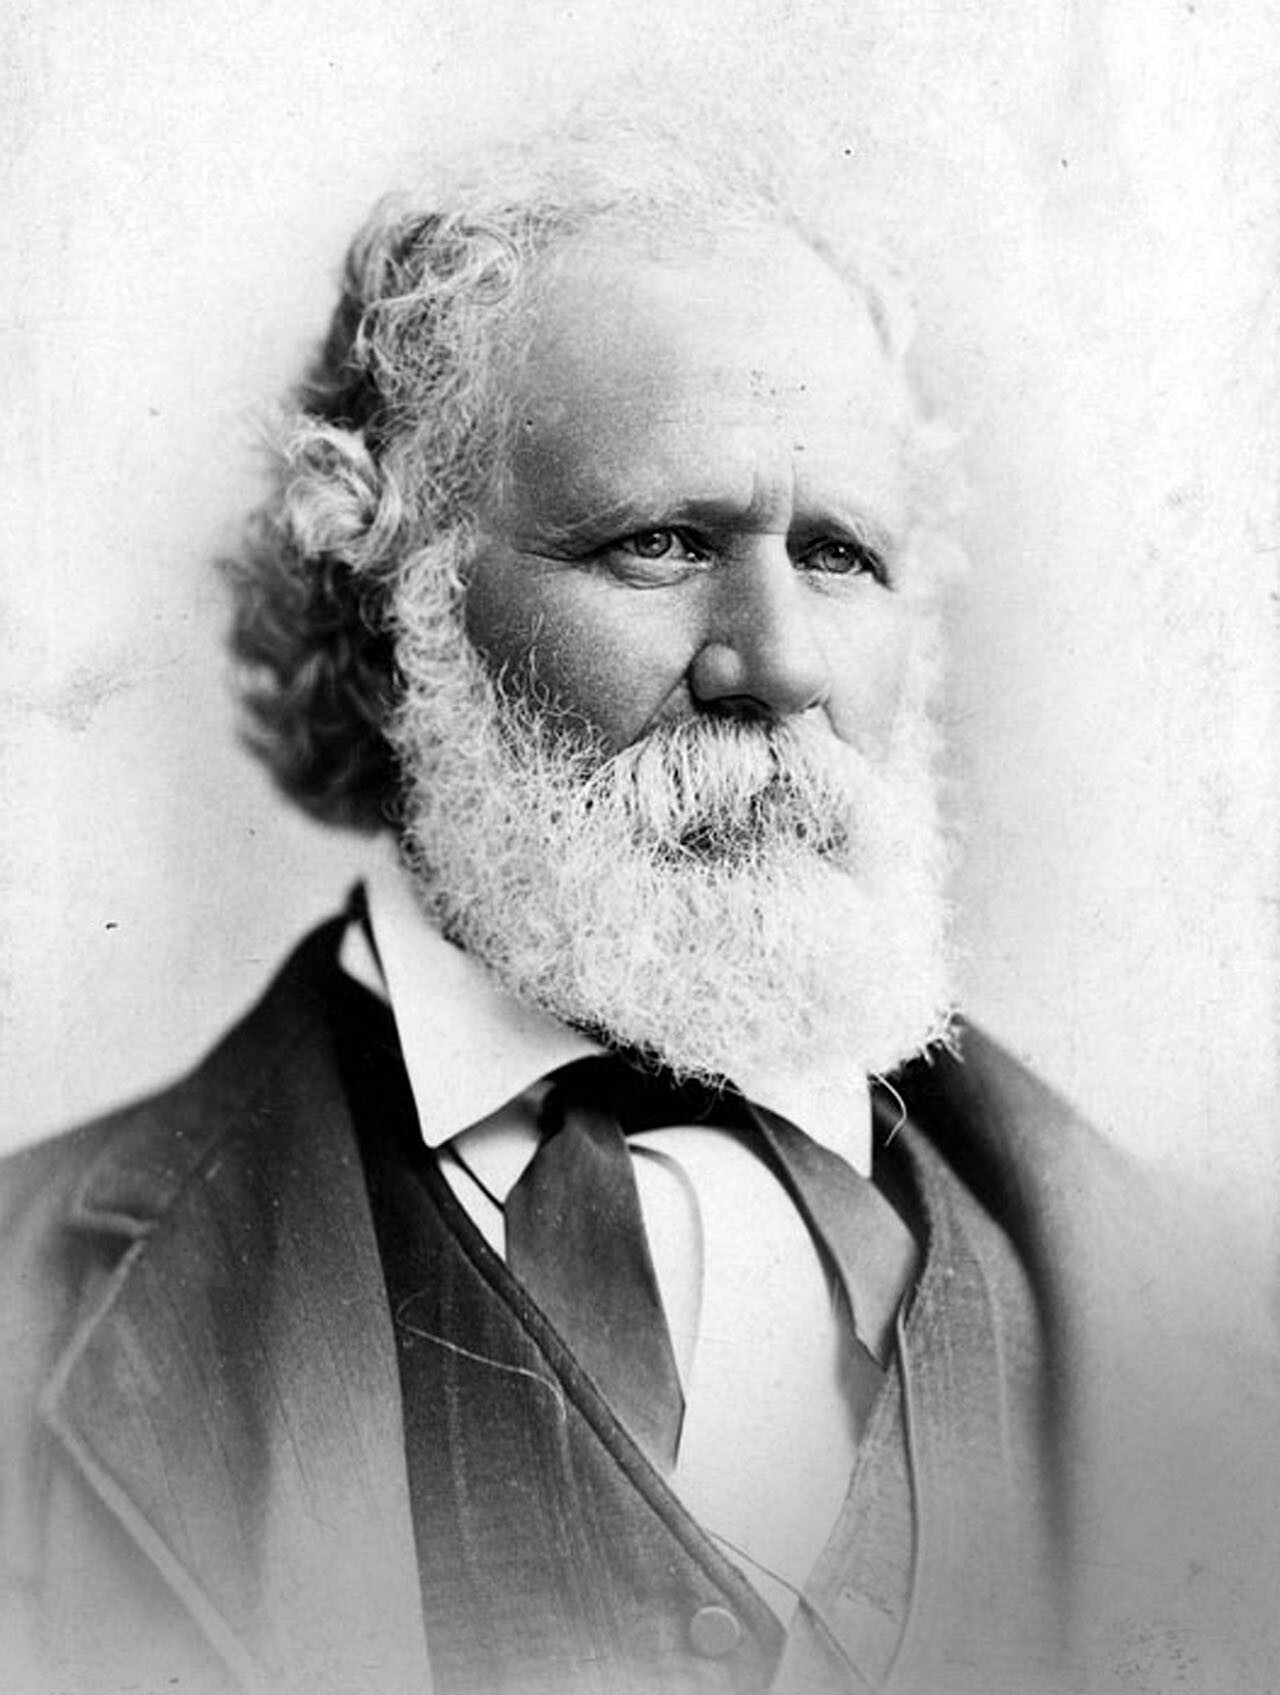 Dr. John S. Griffin. Griffin was a pioneer physician and businessman, as well as secessionist leader in Civil War-era Los Angeles. Photograph courtesy of Security Pacific National Bank Collection, Los Angs and scrapes. Photograph courtesy of Wikimedia.  ​